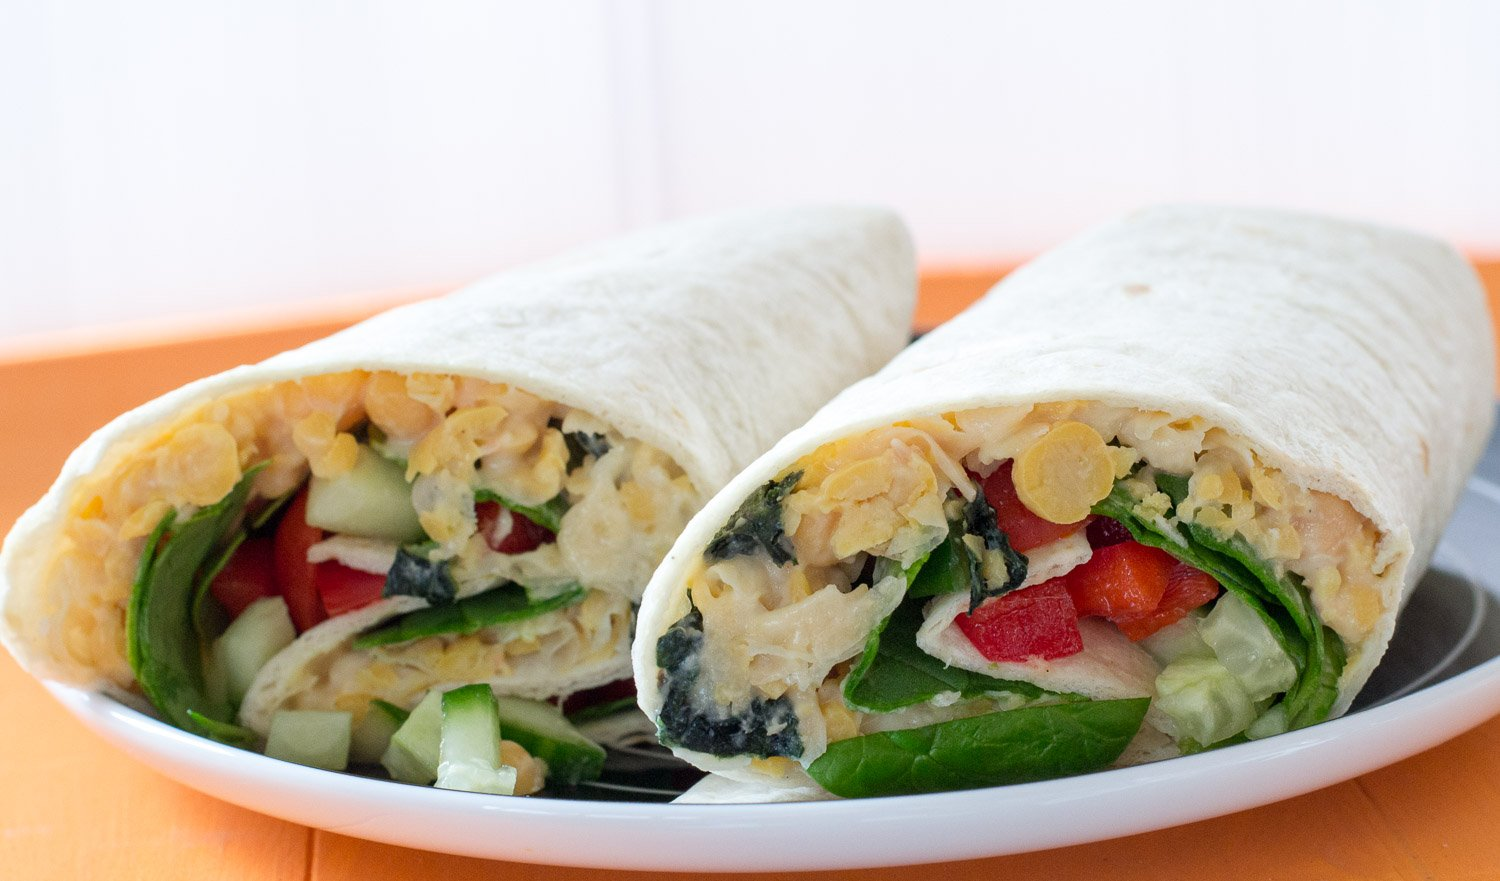 Vegan chickpea tuna mayo wrap